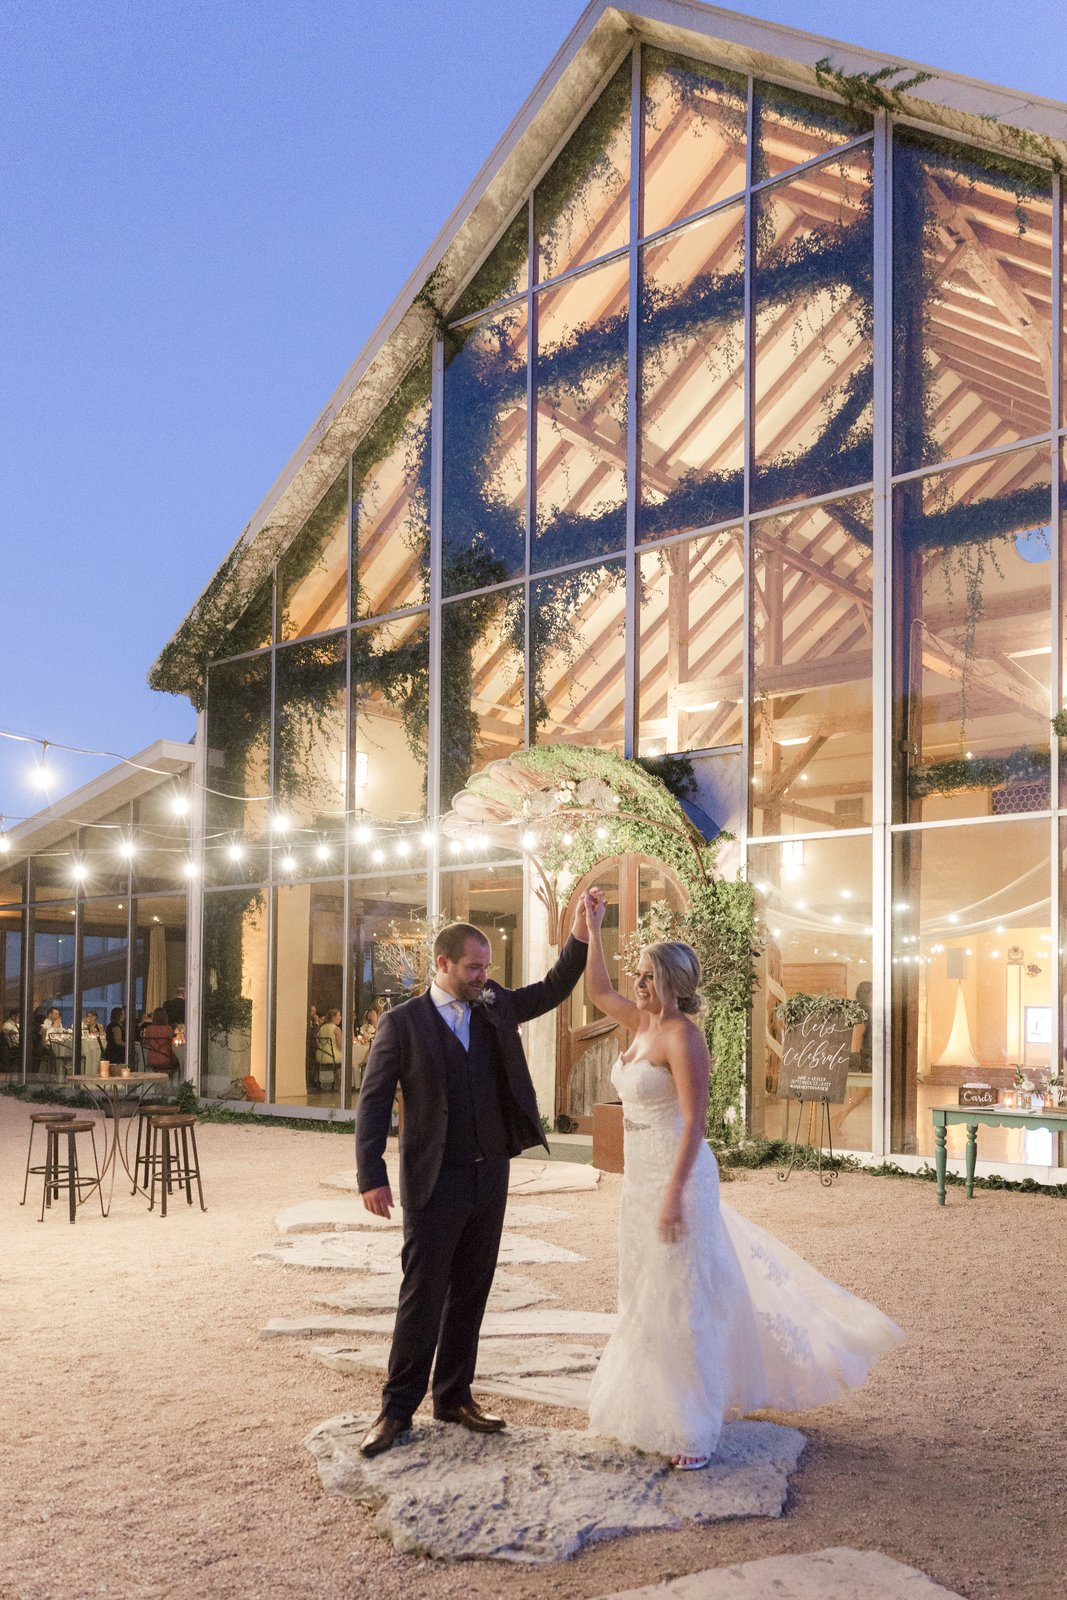 Photo 10 of 10 in 10 Modern Wedding Venues That Will Make ...